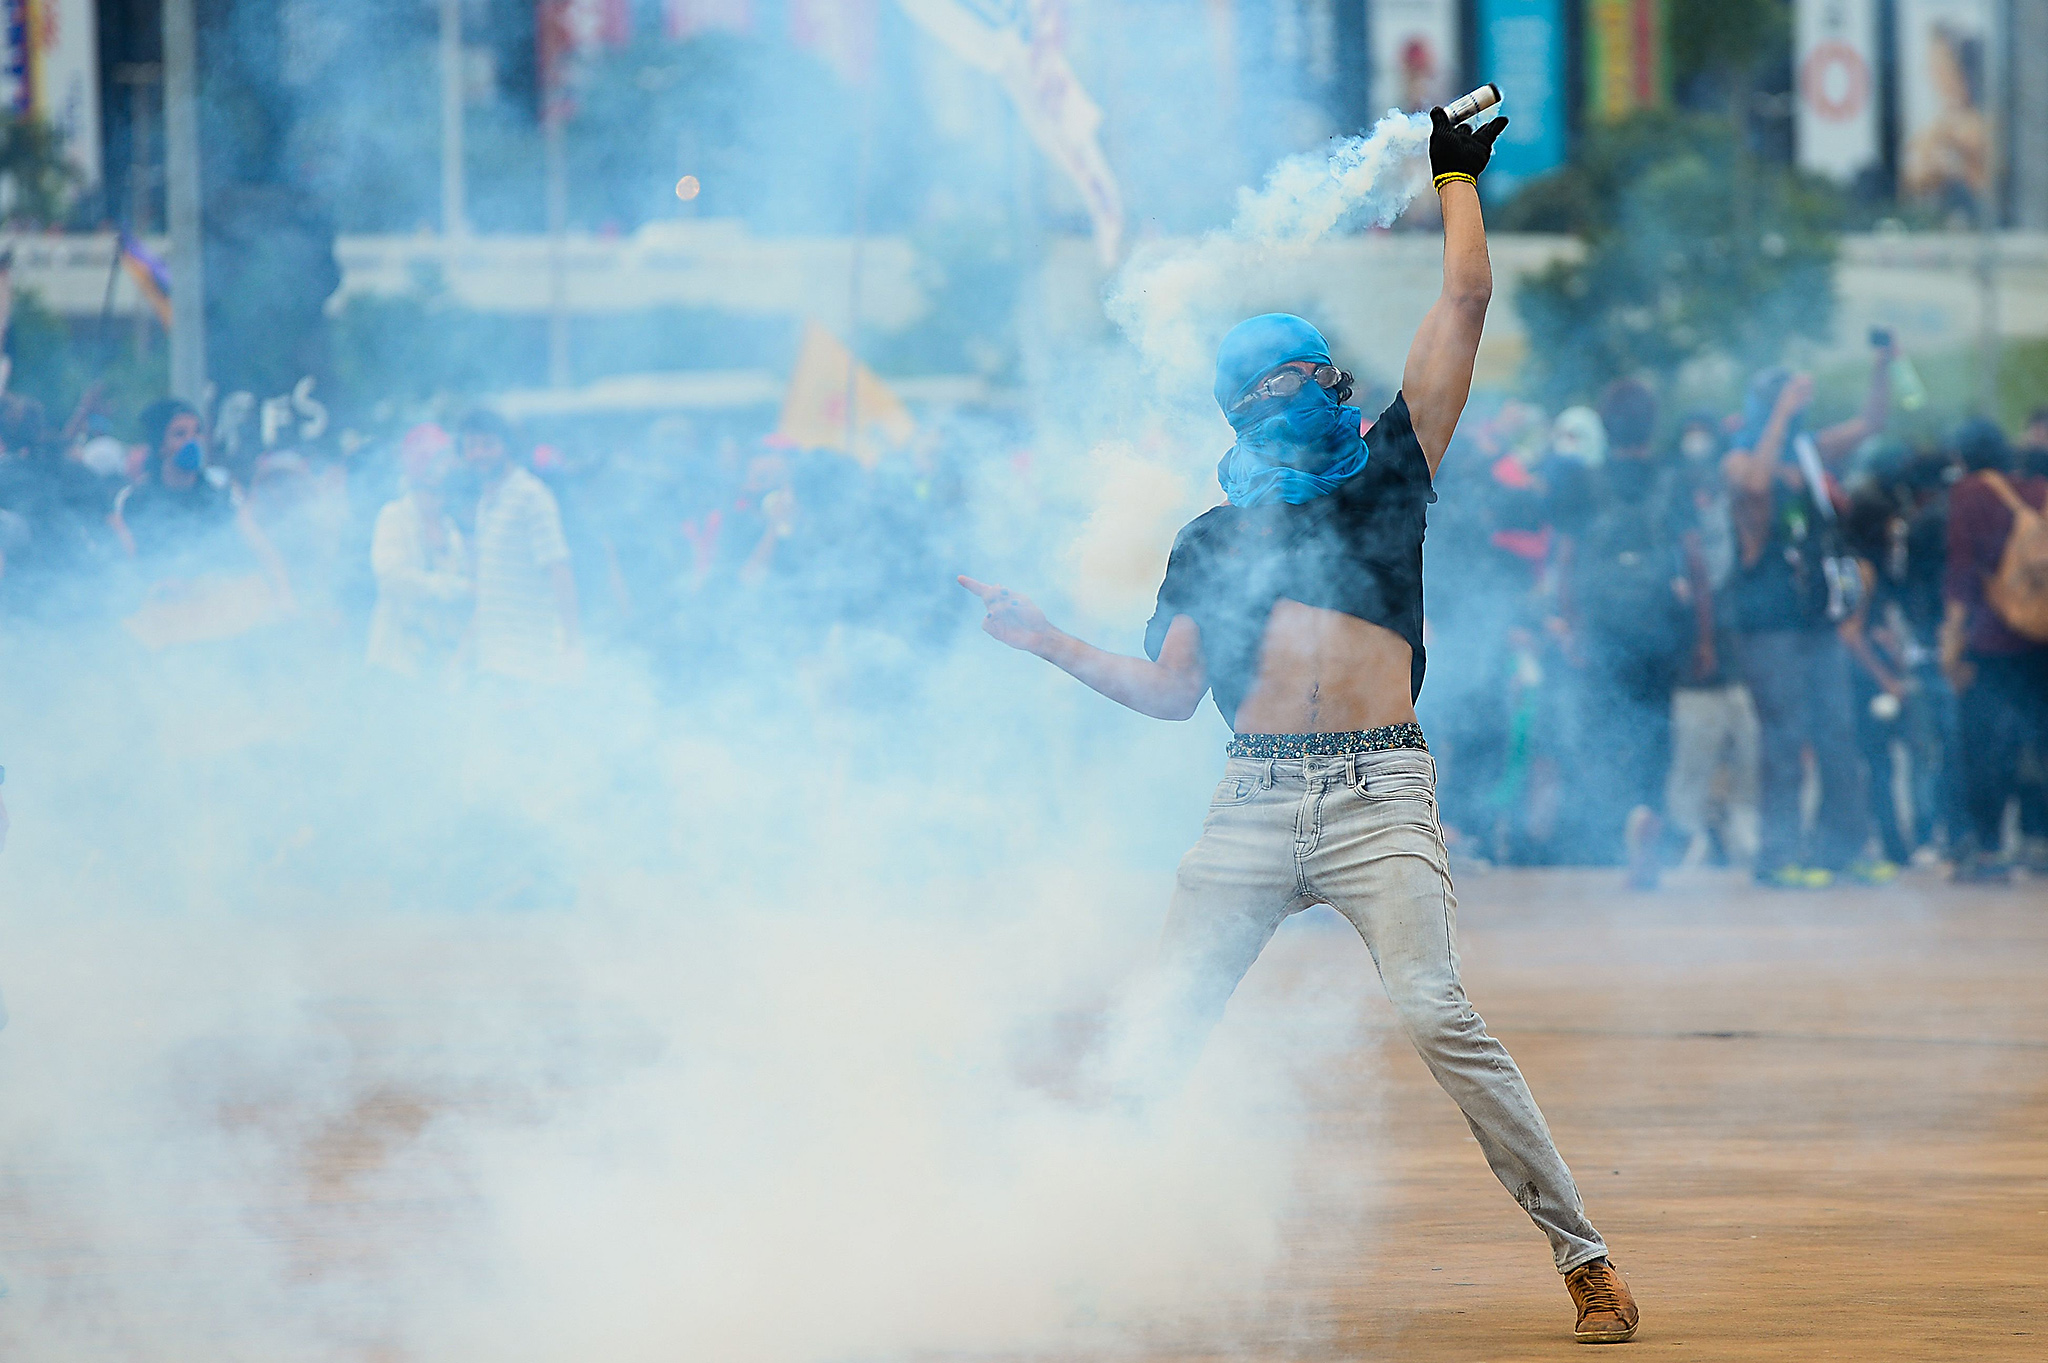 Demonstrators clash with police during a protest in front of the National Congress in Brasilia on December 13, 2016.  Brazil's Senate approved Tuesday a 20-year freeze on government spending billed as the centerpiece of austerity reforms aimed at restoring economic health to the troubled Latin American giant. / AFP PHOTO / ANDRESSA ANHOLETEANDRESSA ANHOLETE/AFP/Getty Images